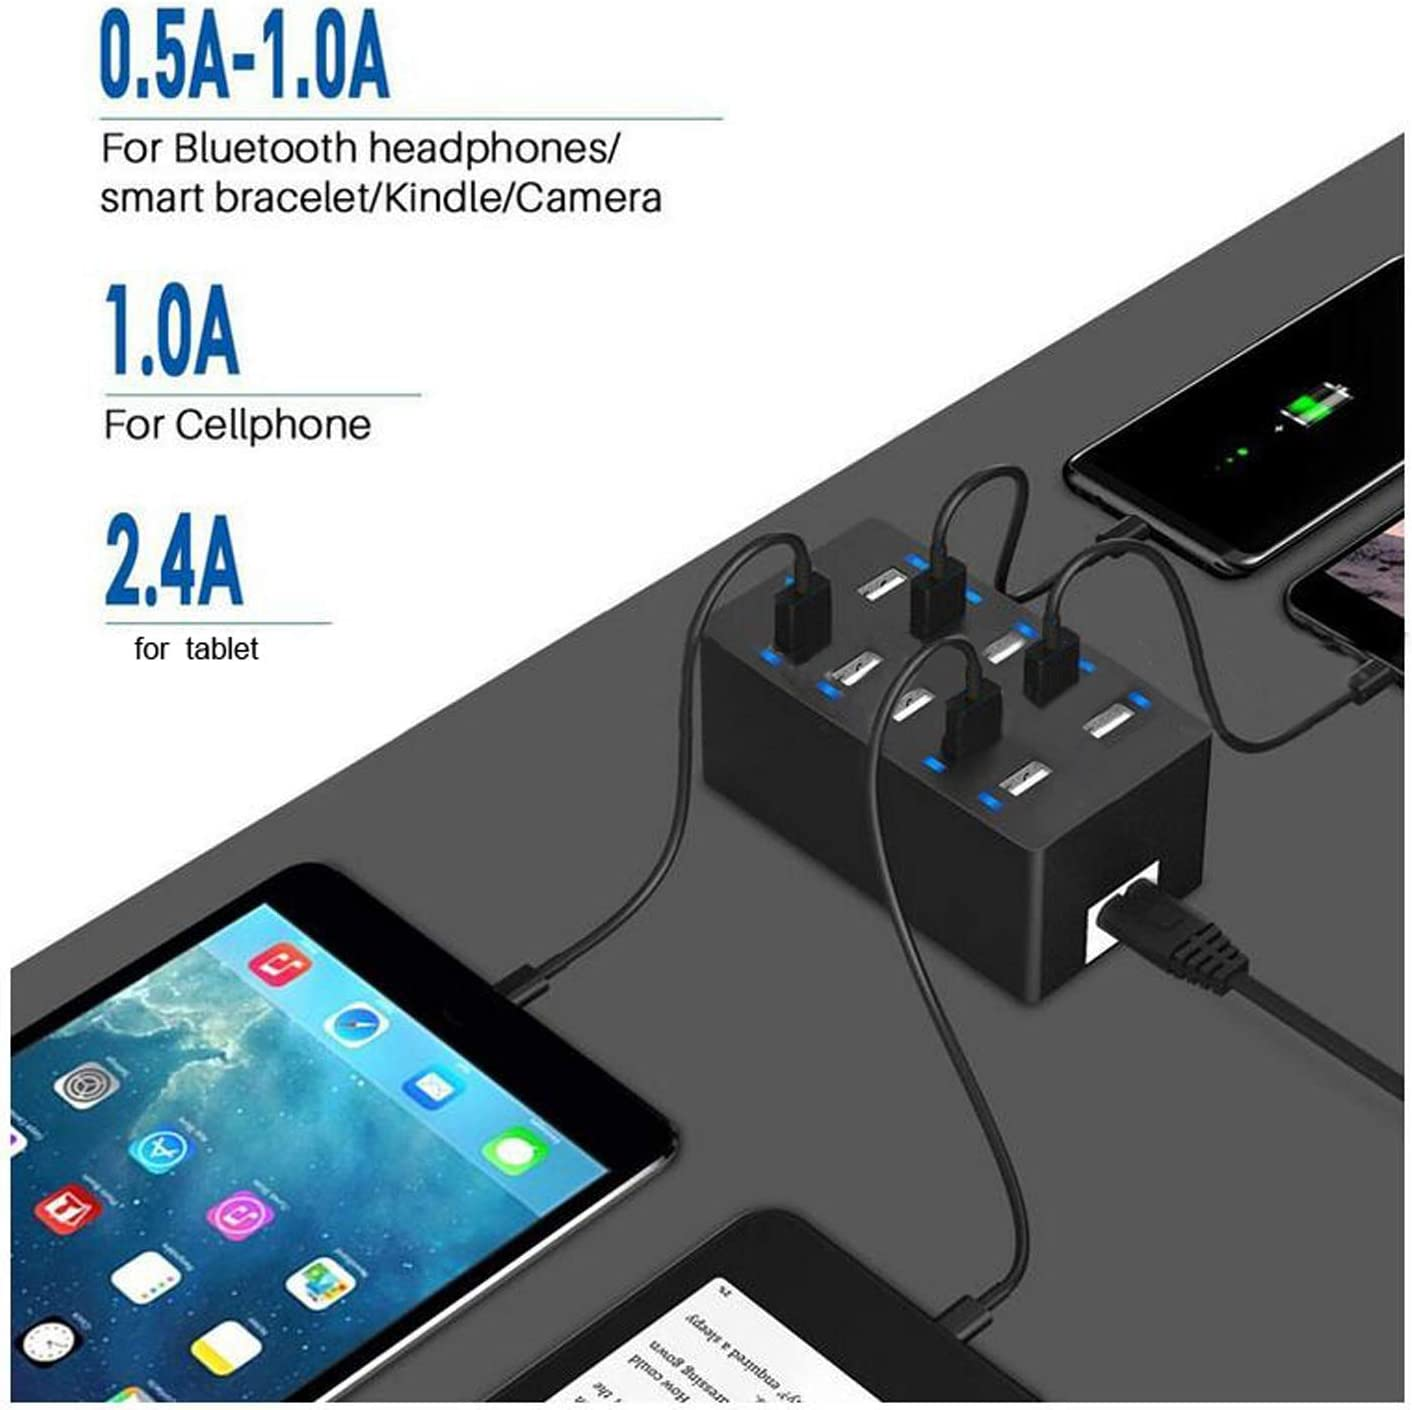 ShengLong USB Charging Station USB Charger Multi Port with Smart Detect Galaxy Compatible with iPhone and Other USB Charging Devices 60W 10 Port USB Charger Hub iPad Tablet